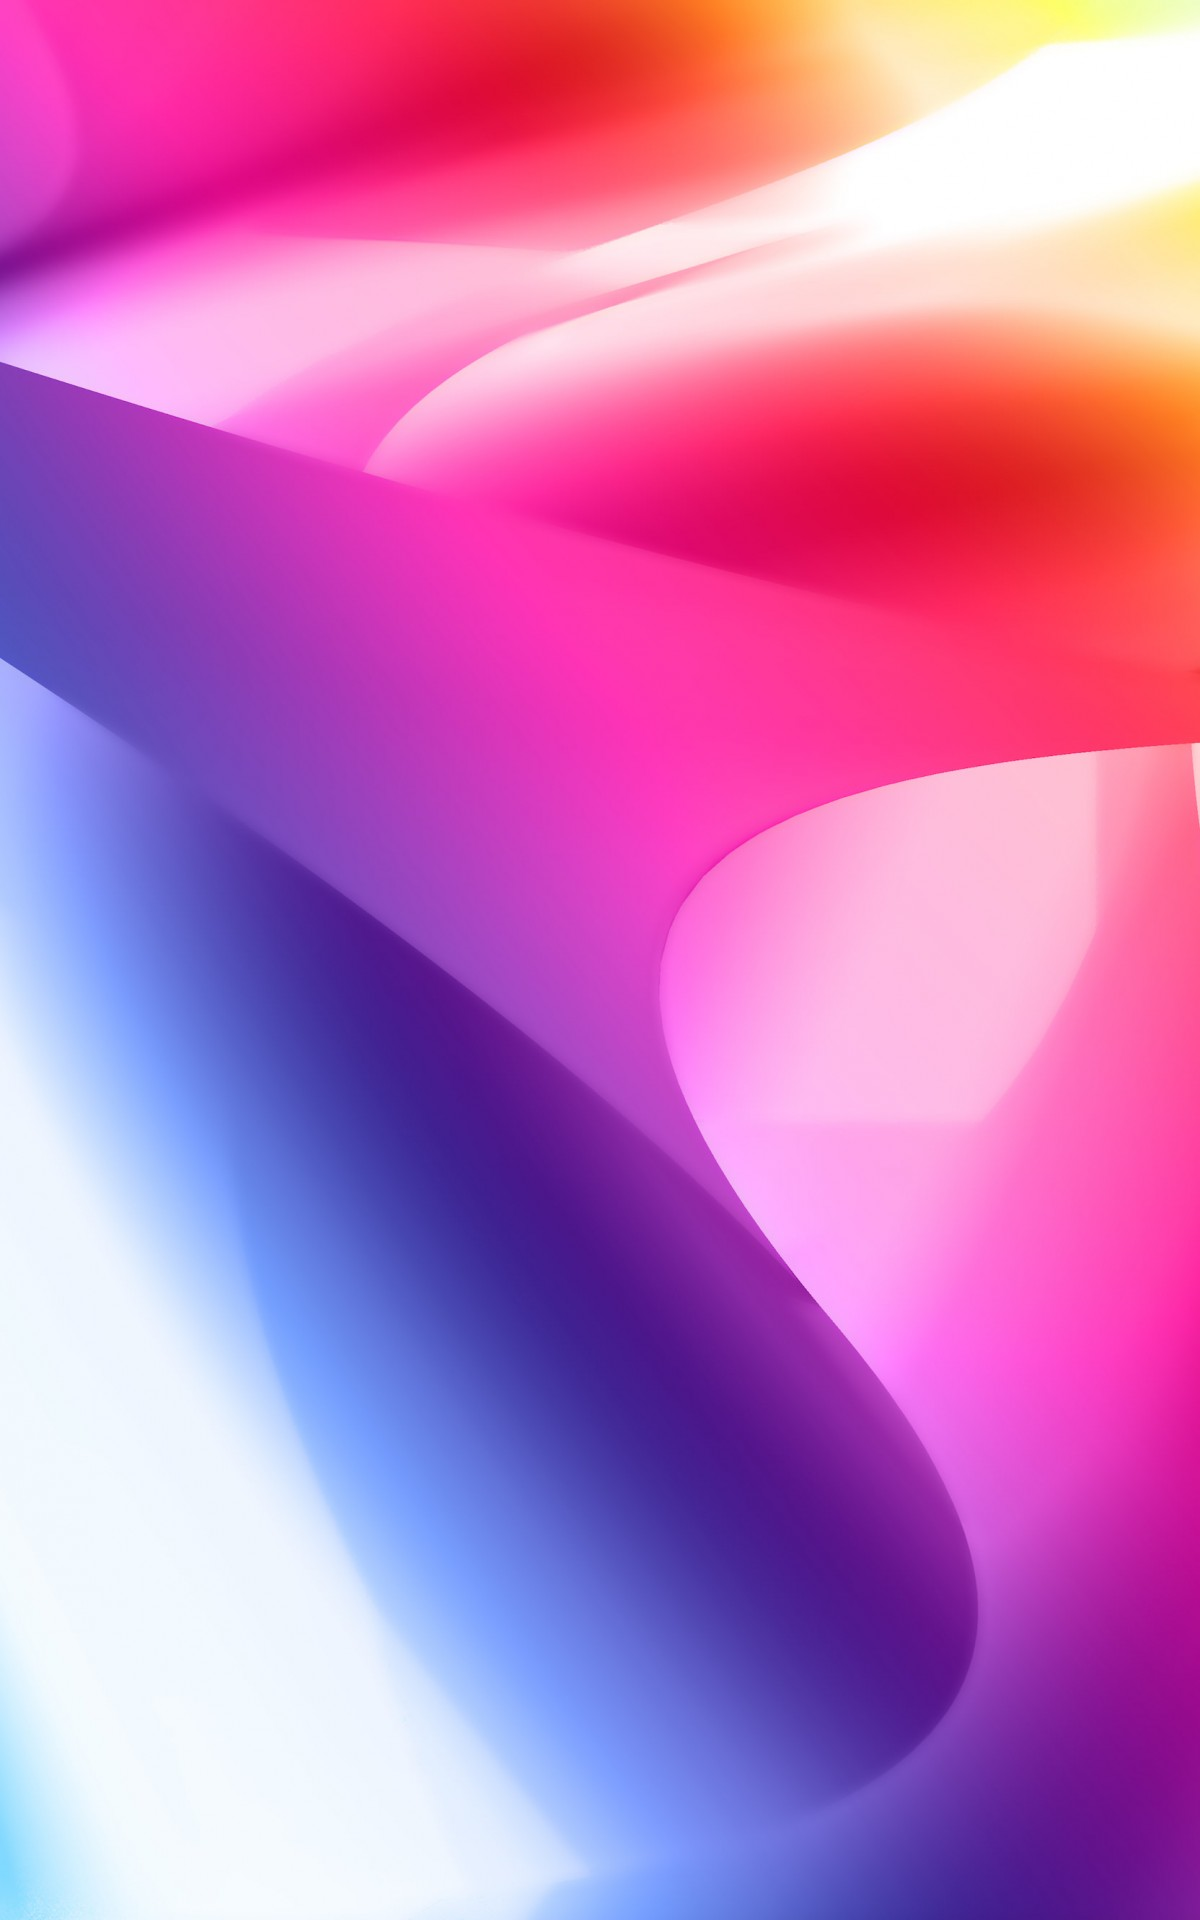 Colorful Smoke HD wallpaper for Kindle Fire HDX   HDwallpapersnet 1200x1920